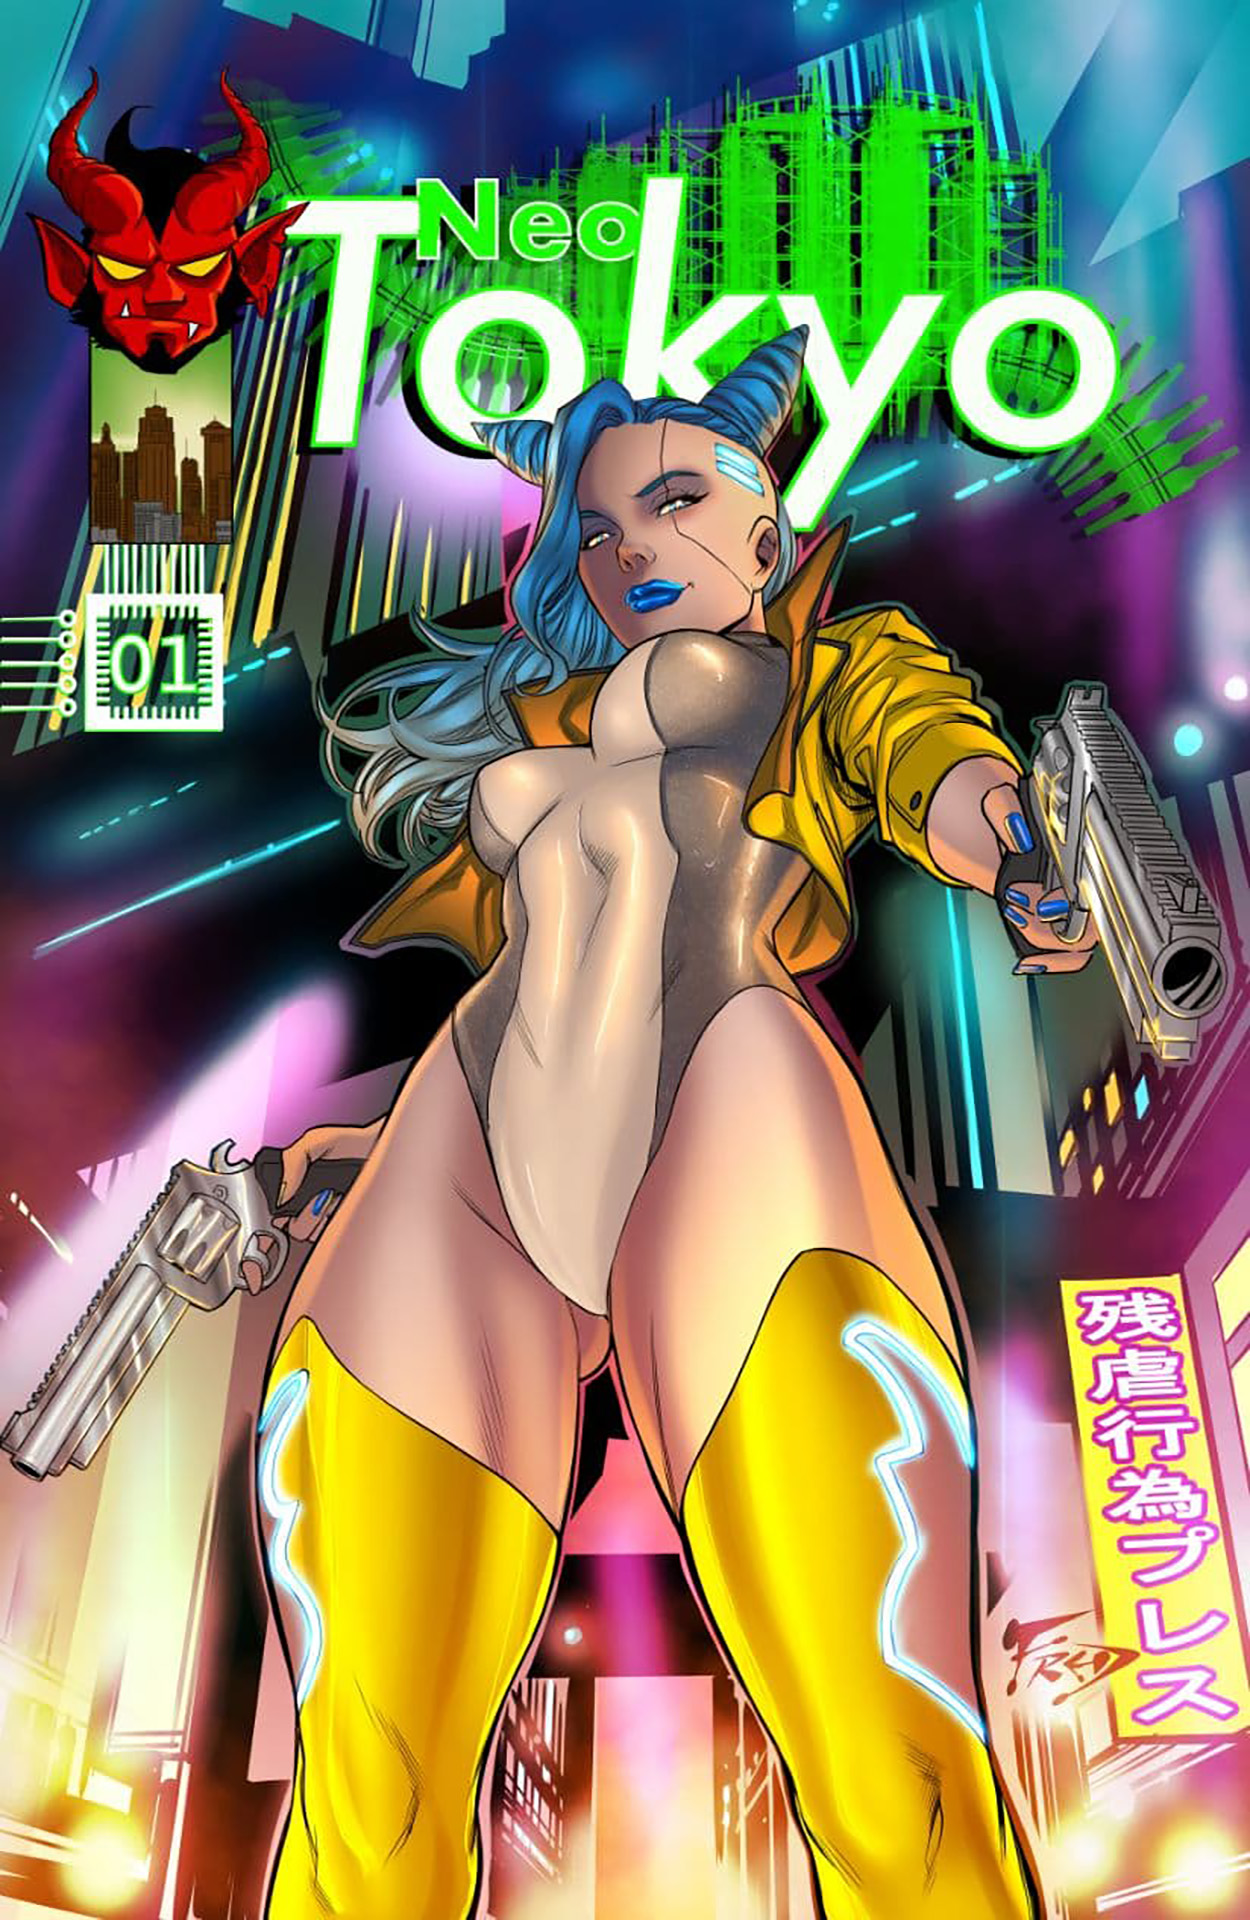 Neo Tokyo: The Truth is a Virus